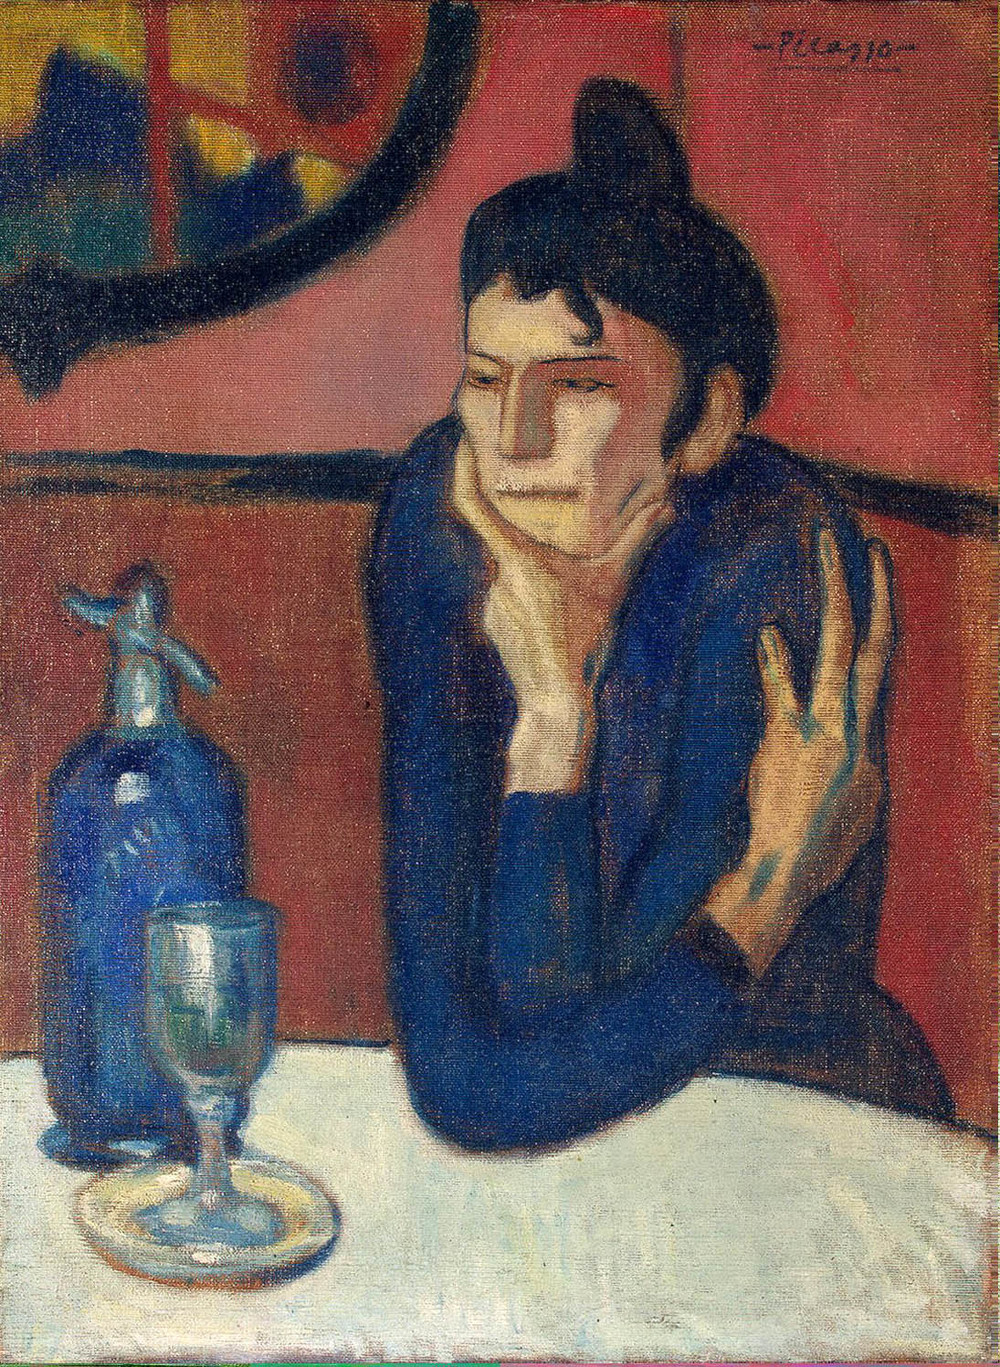 Woman drinking Absinthe - Picasso